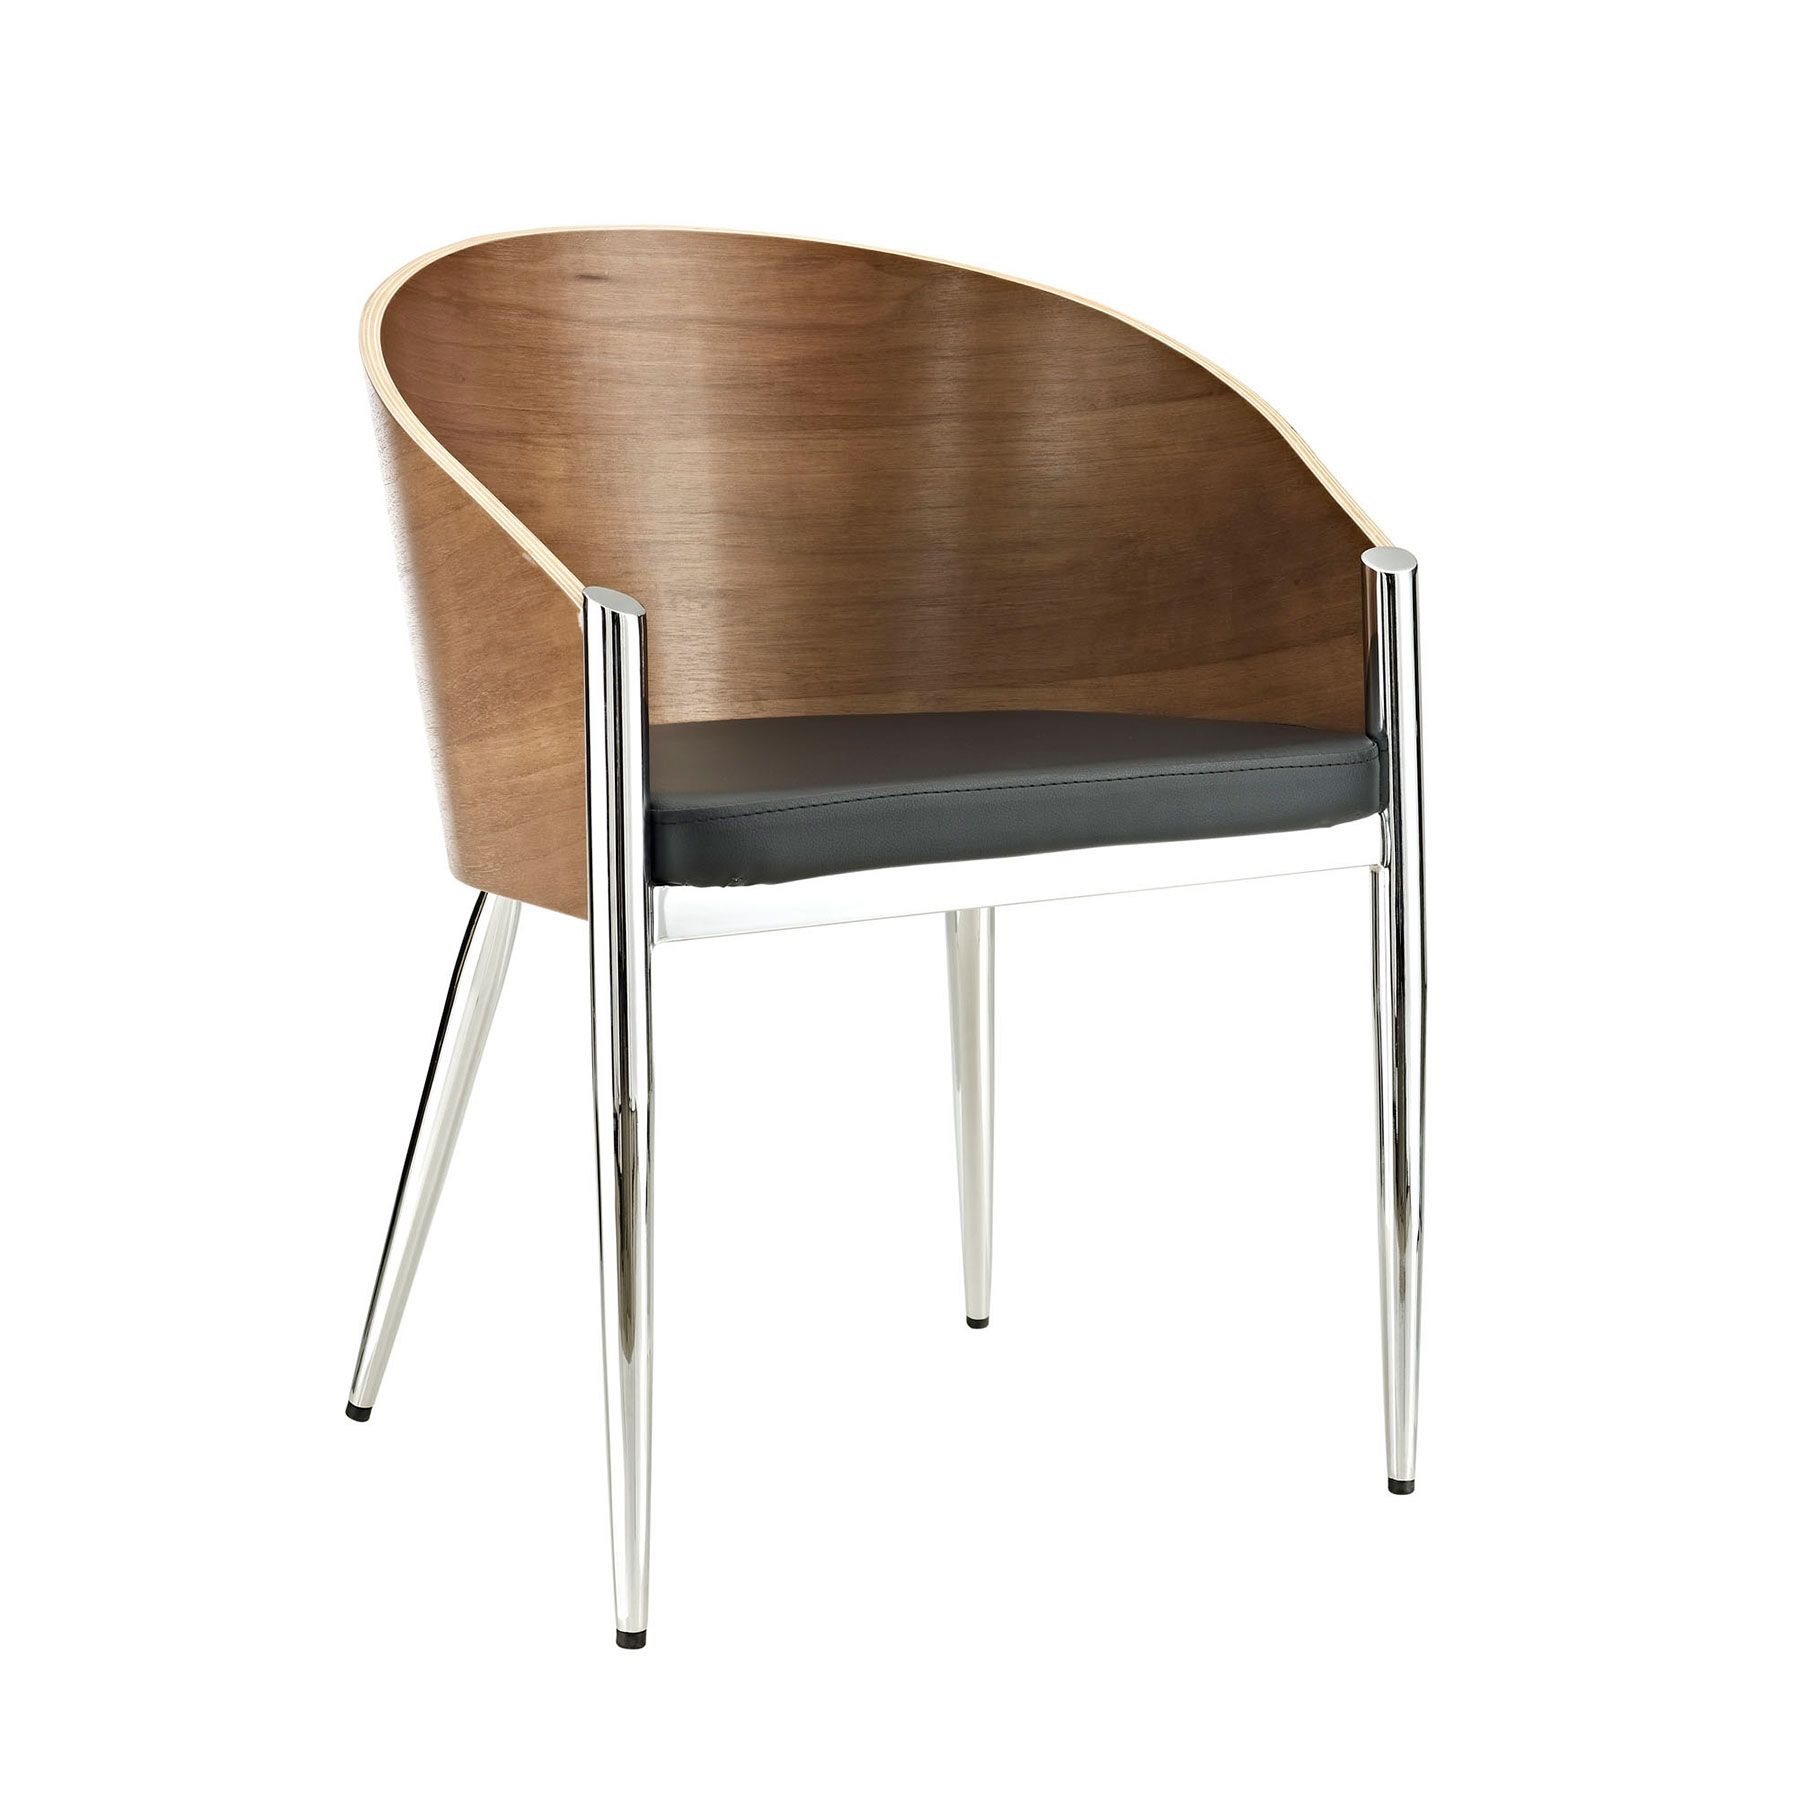 the astor dining chair provides constant support to all sitters with